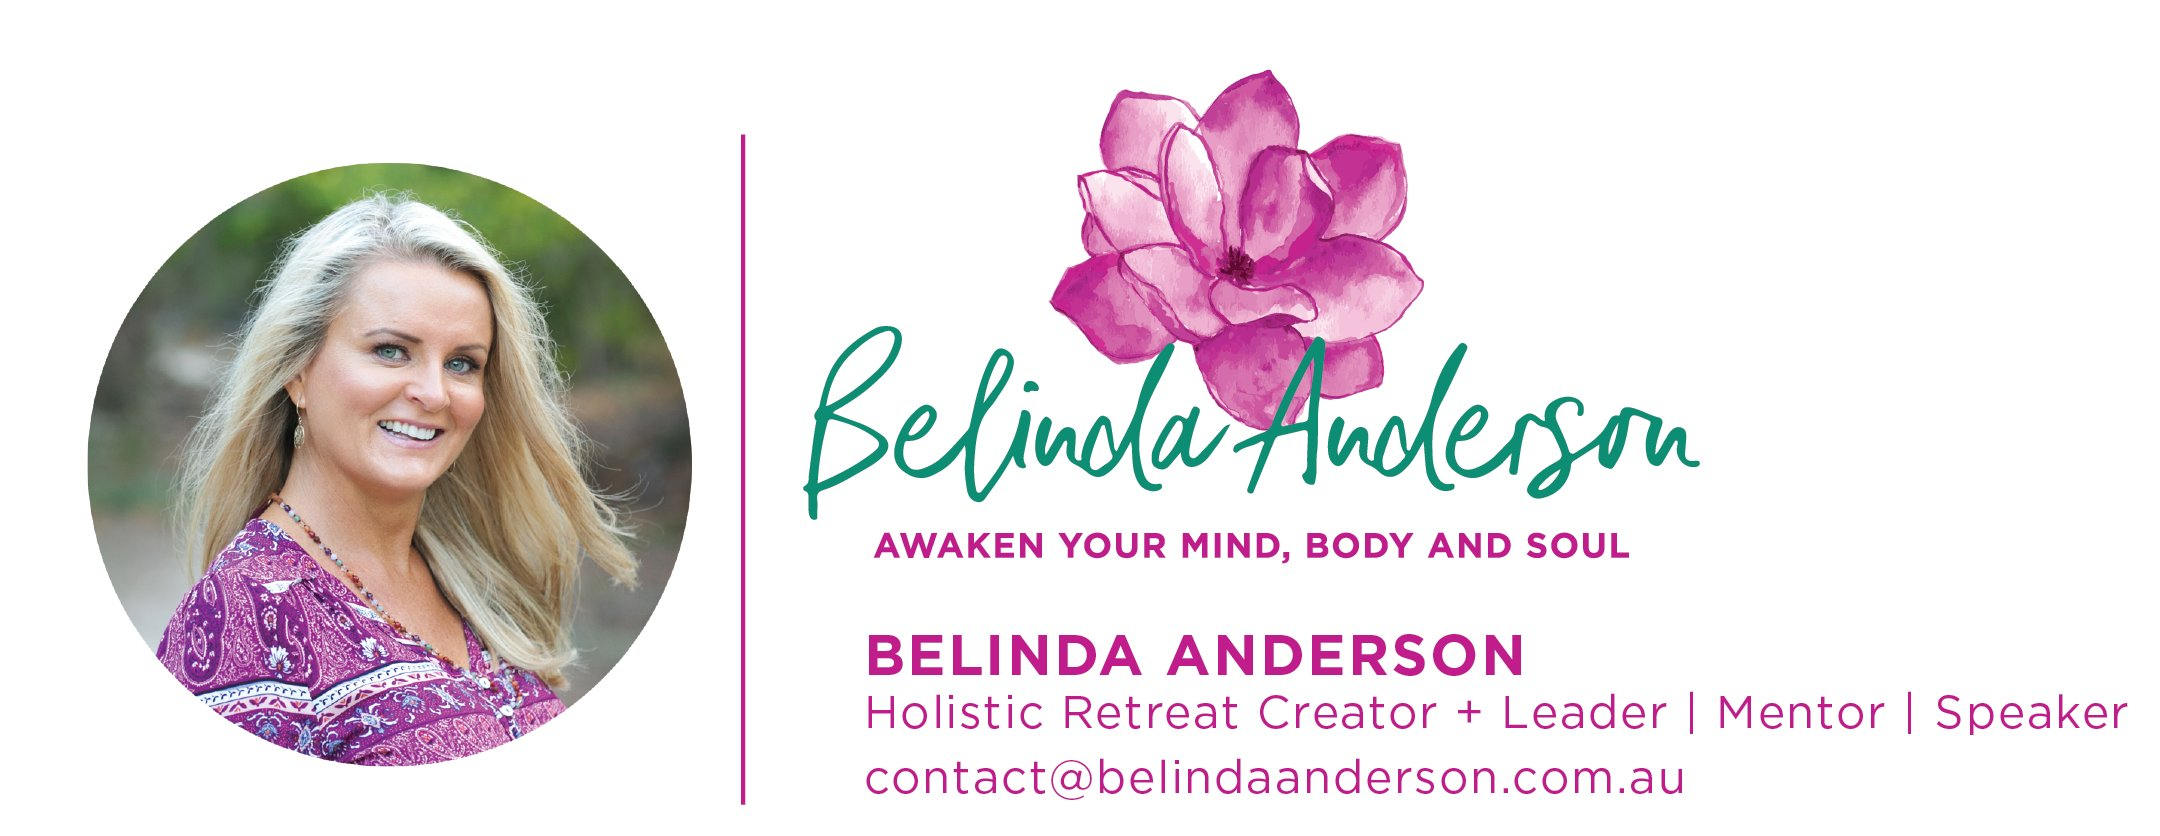 Ready to Achieve Personal Growth? Contact Belinda Anderson